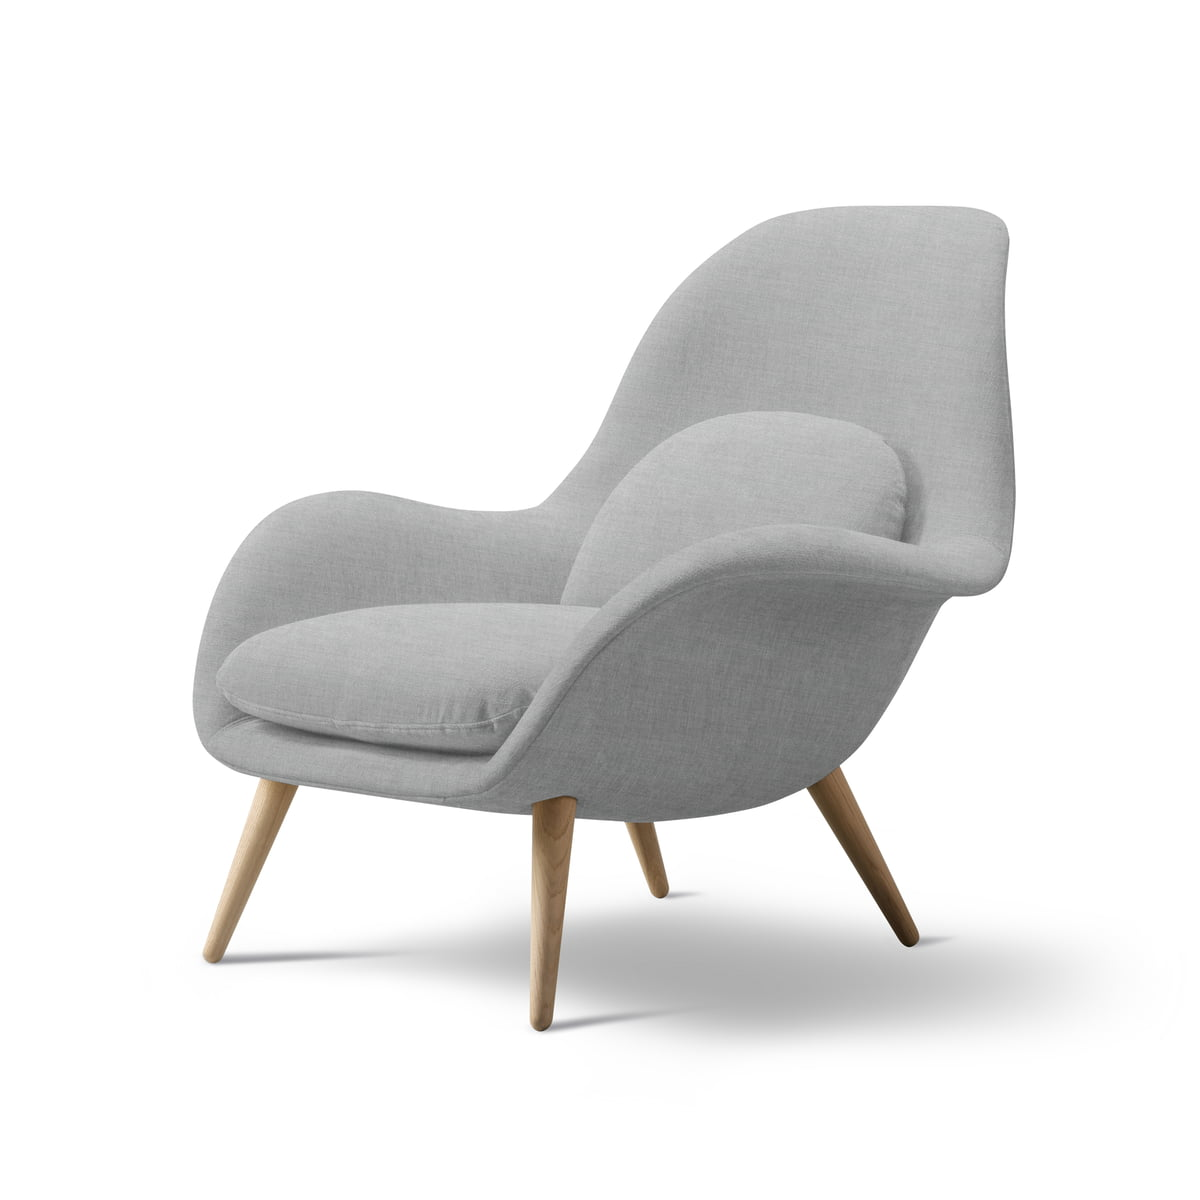 Swoon Chair Von Fredericia Connox Shop - Sessel Eiche